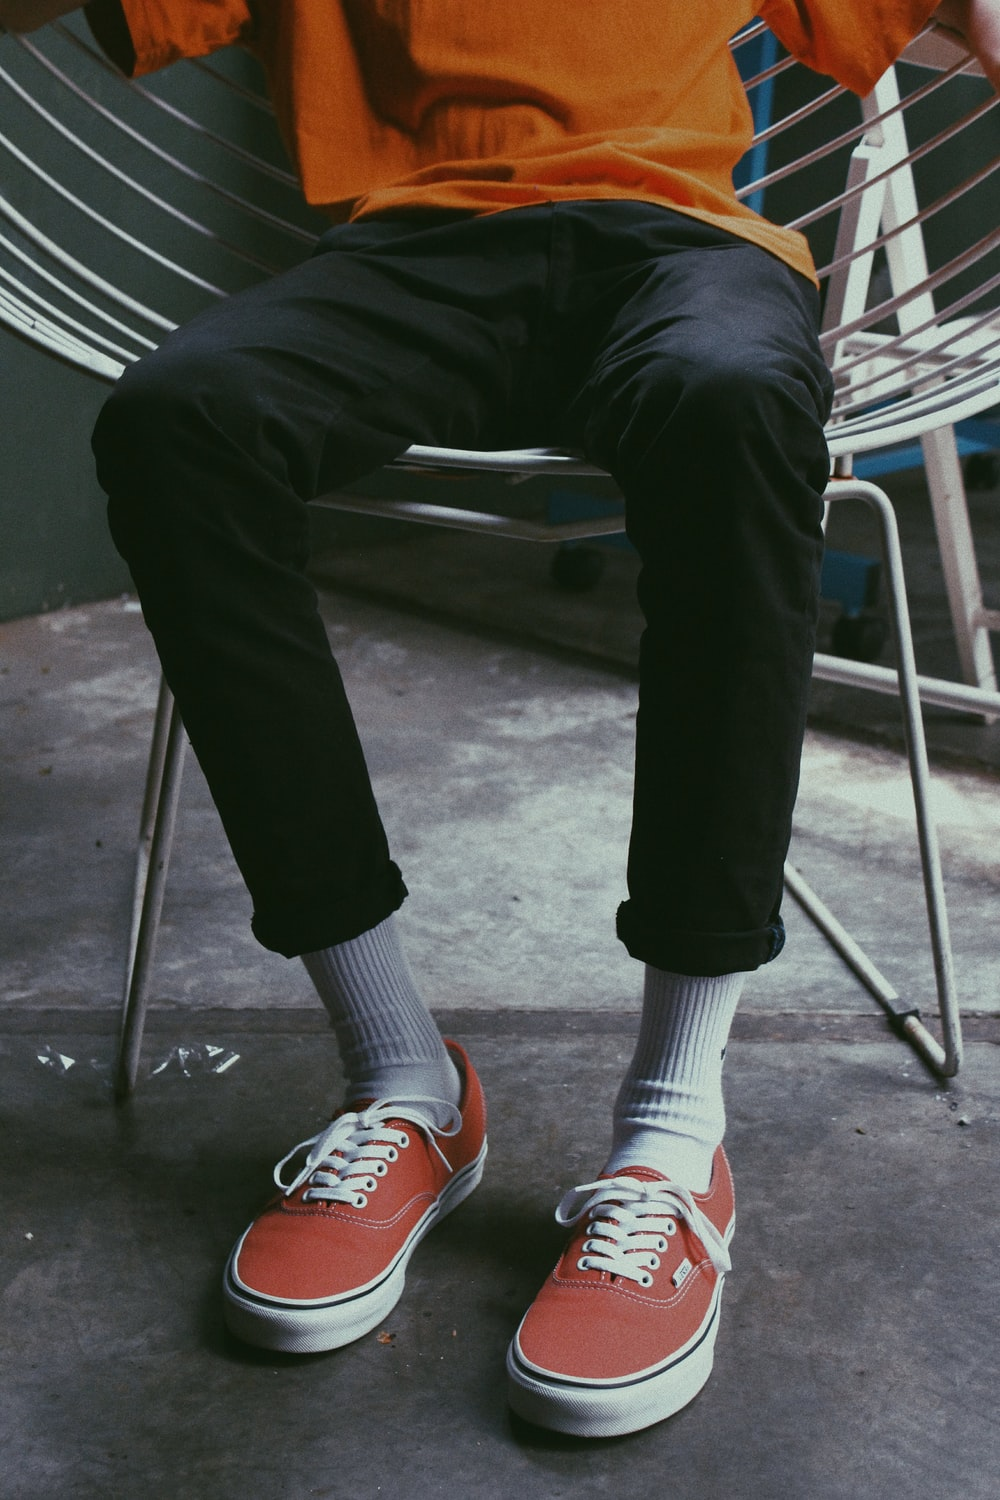 person in black pants and red and white sneakers